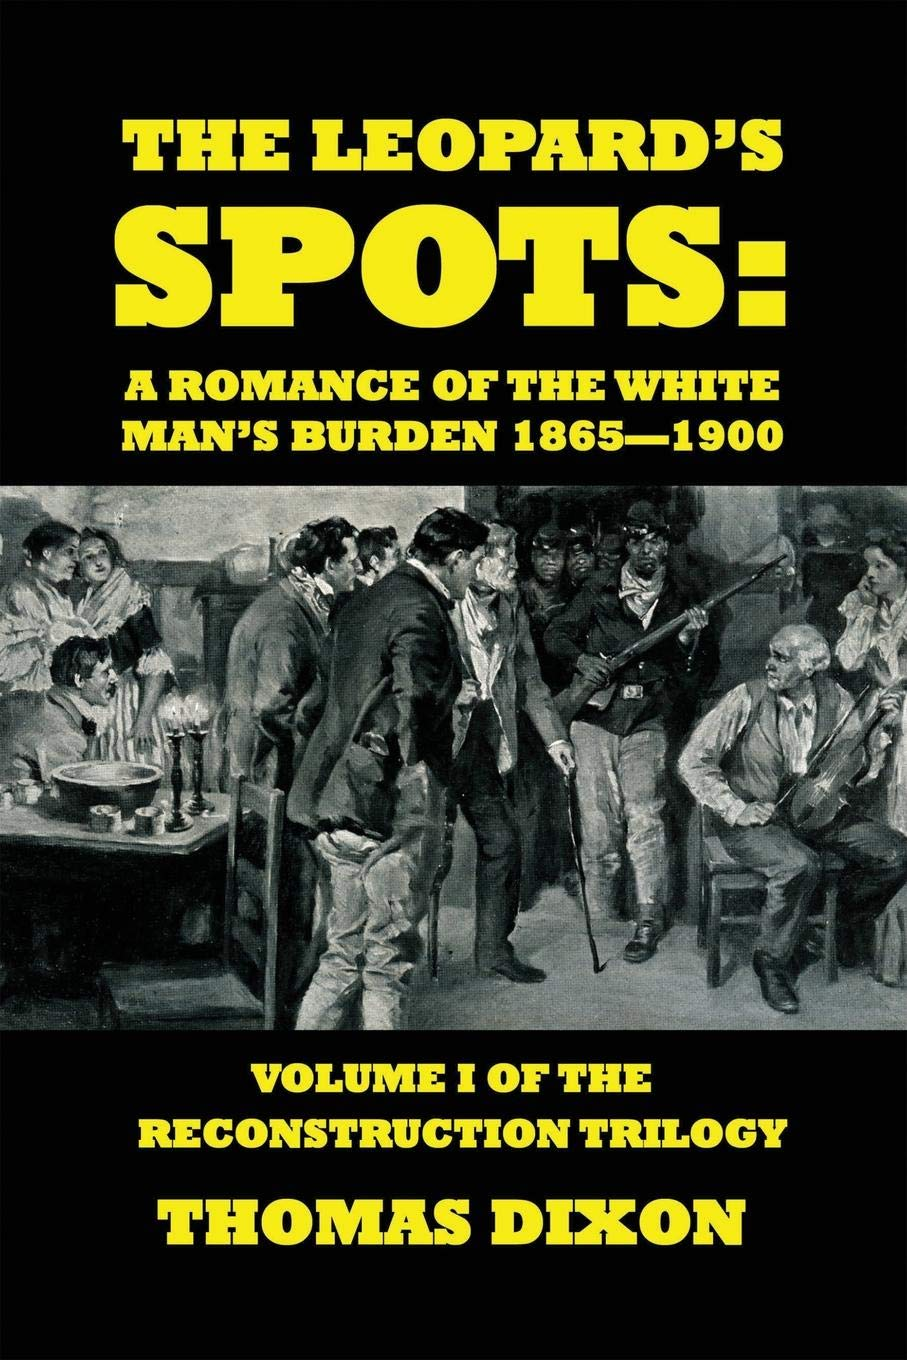 Download The Leopard's Spots: A Romance of the White Man's Burden 1865-1900 PDF